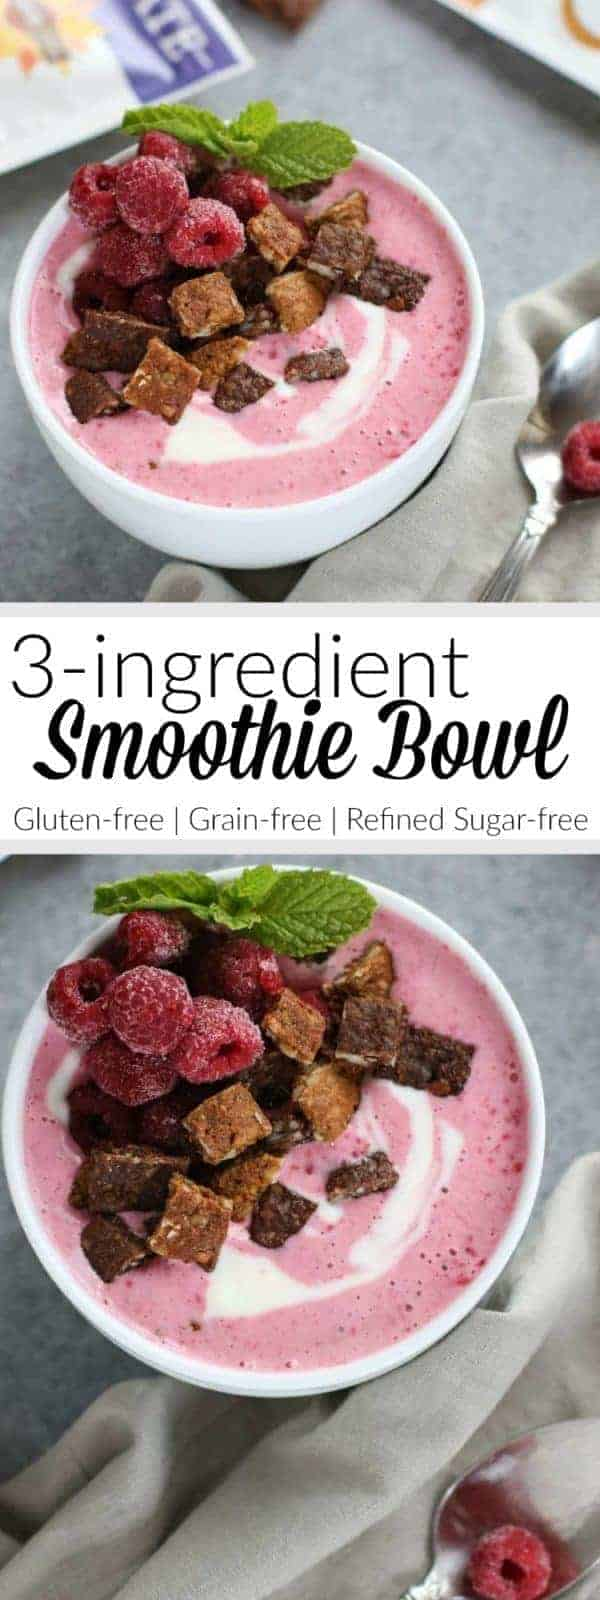 Snacks with benefits: Our 3-Ingredient Smoothie Bowl is the perfect little 5-minute sweet treat! | Gluten-free | Grain-free | Vegetarian | therealfoodrds.com